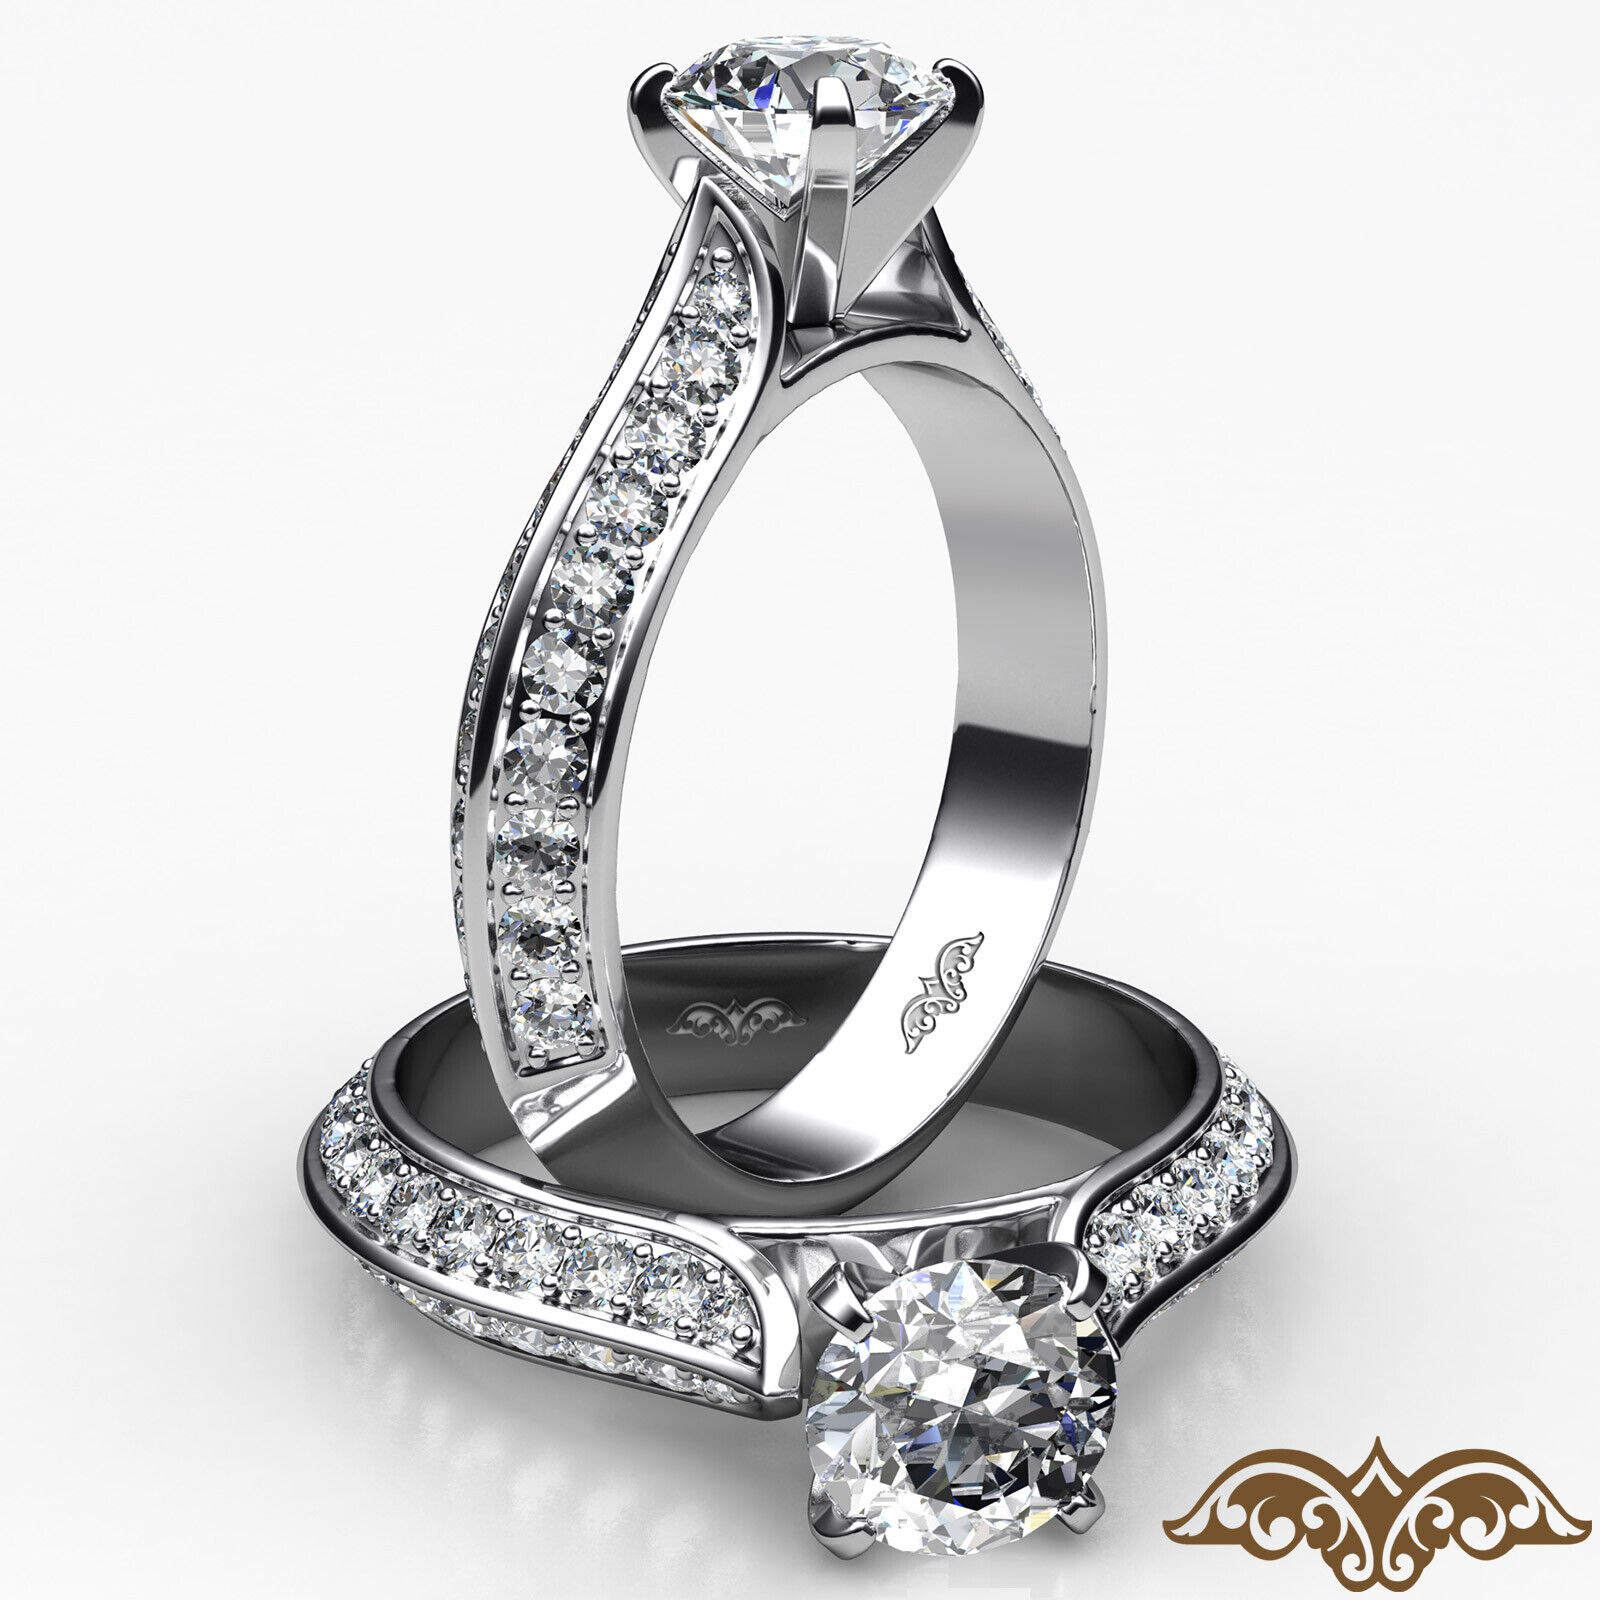 2 Row Pave Shank Sidestone Round Diamond Cathedral Engagement Ring 1.35ctw.